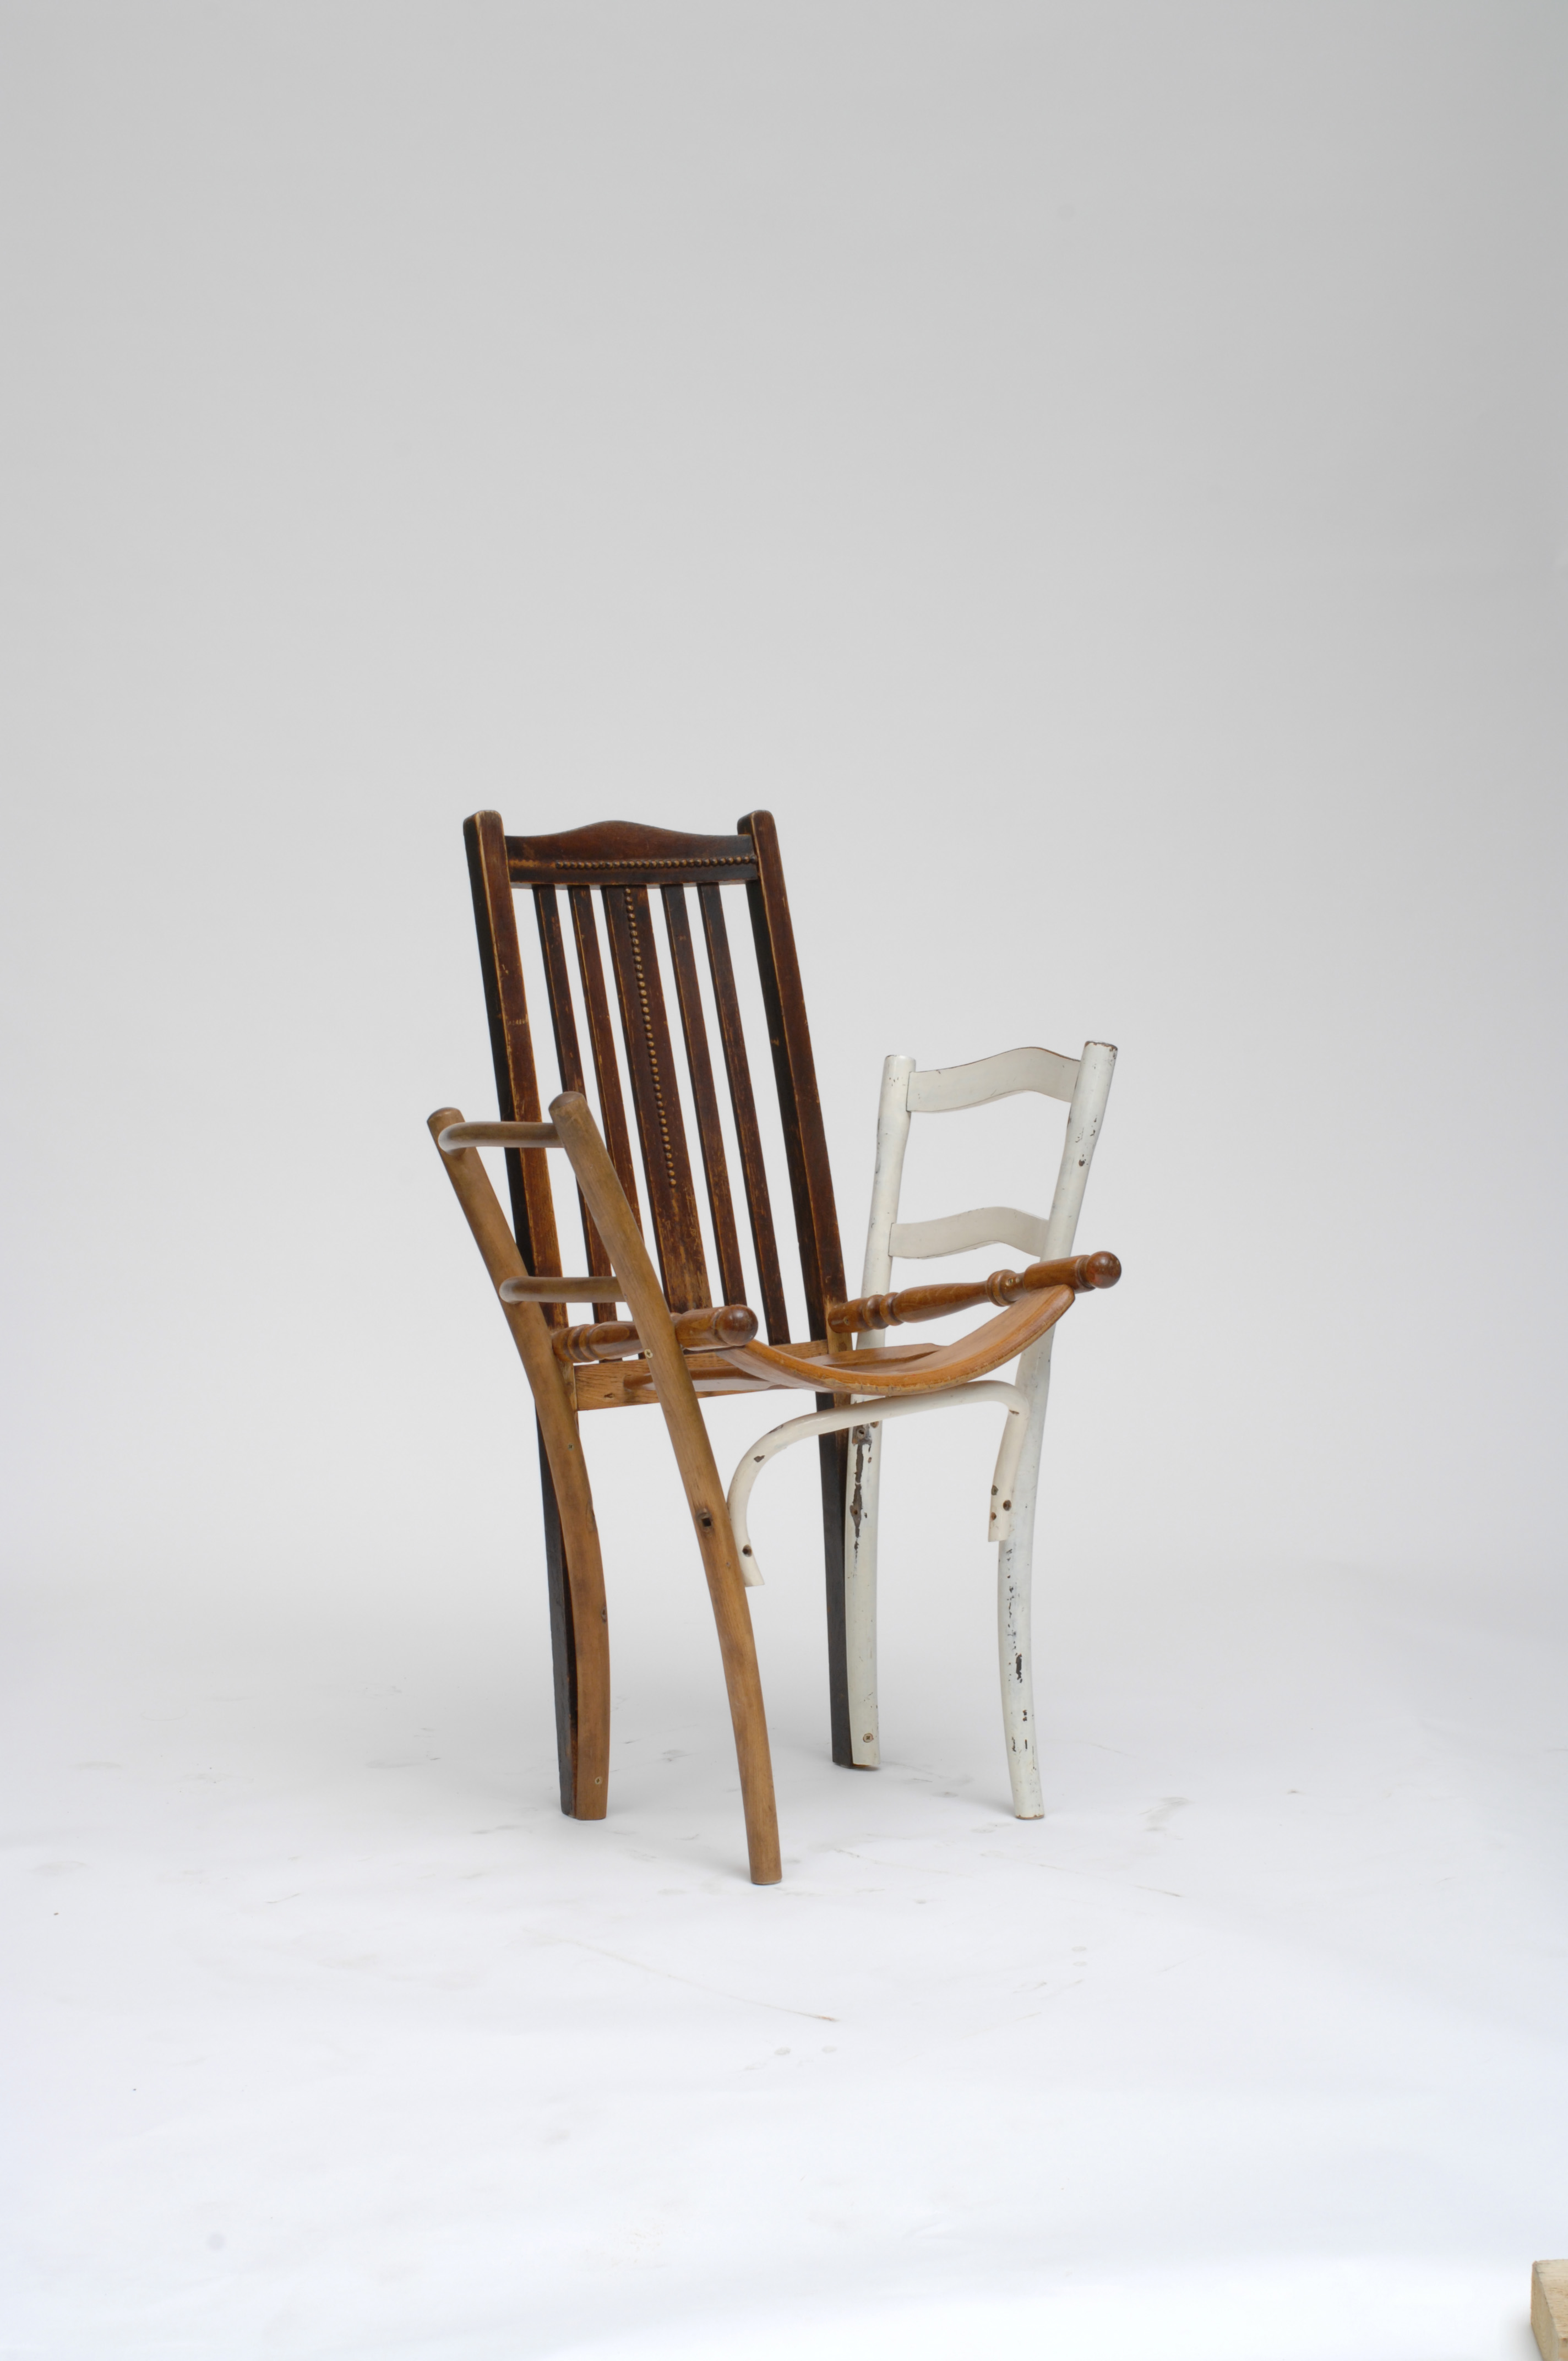 Back Issue From 100 Chairs In 100 Days.